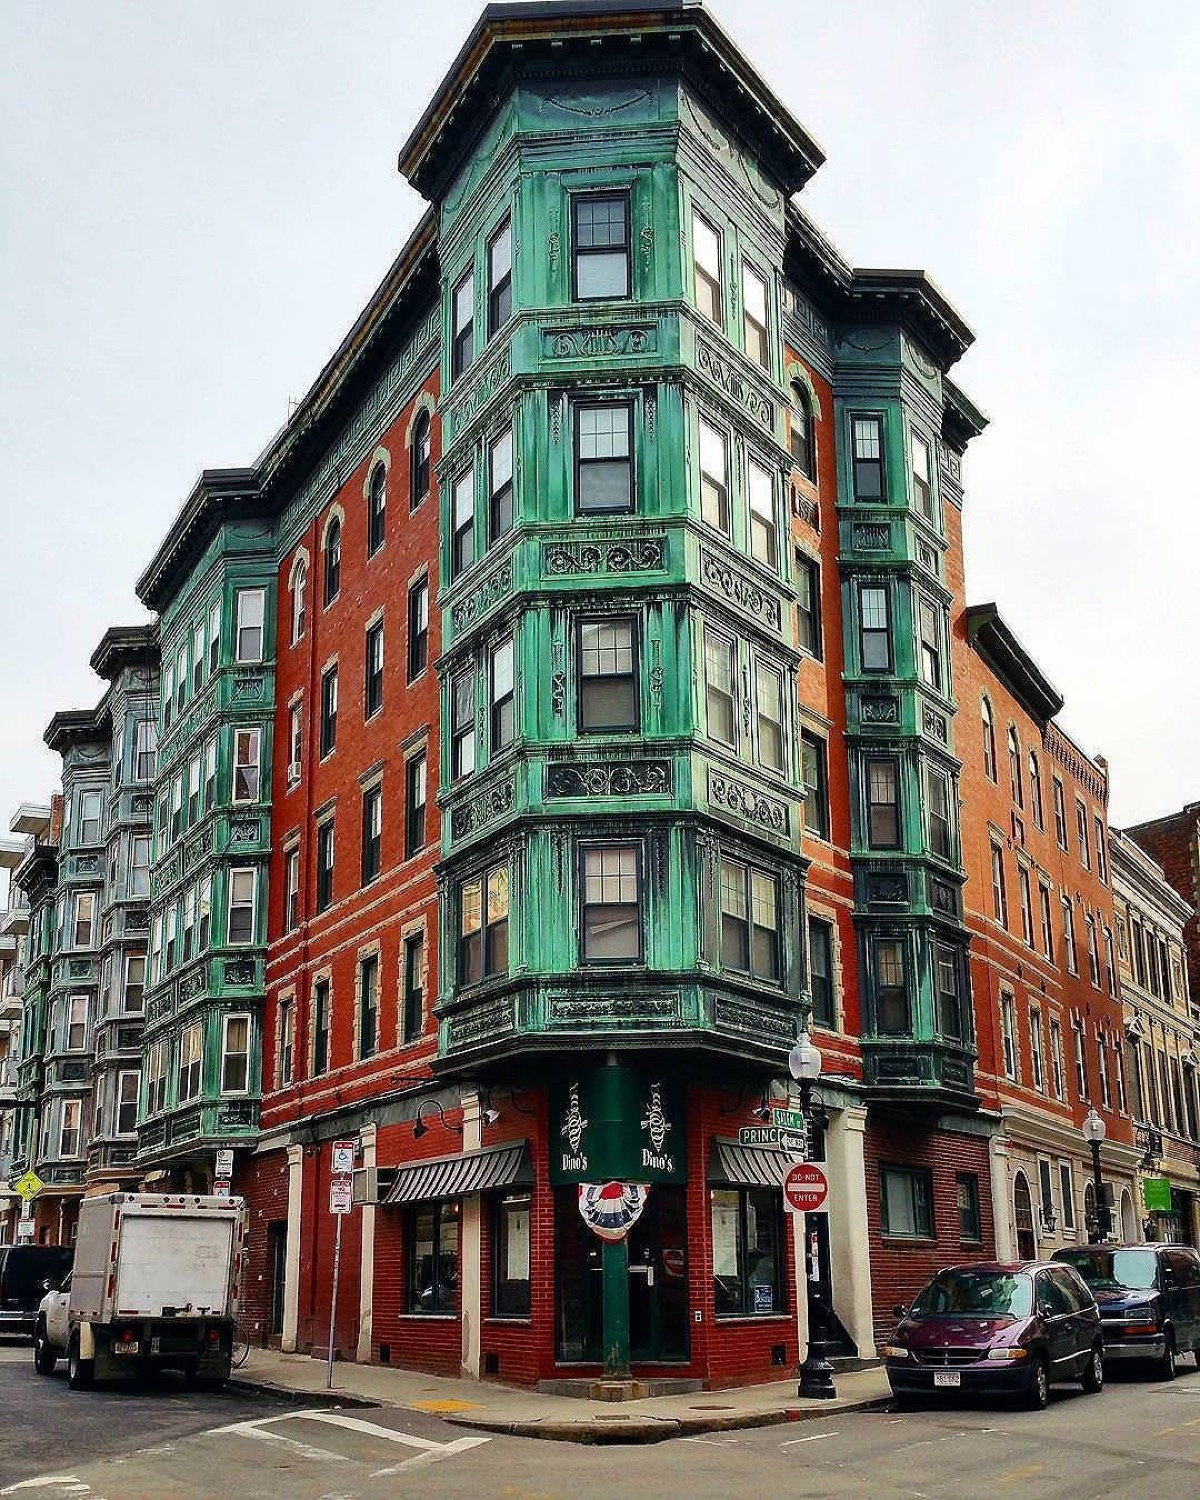 PLACE: North End, Boston / MILES FROM CINCY: 864 / ABOUT: Boston's North End neighborhood has the distinction of being the oldest place in a city full of very old places. People have continuously inhabited the area since it was settled in the 1630s. / Image courtesy of Instagram user @marriottlongwharf // Published: 5.14.17